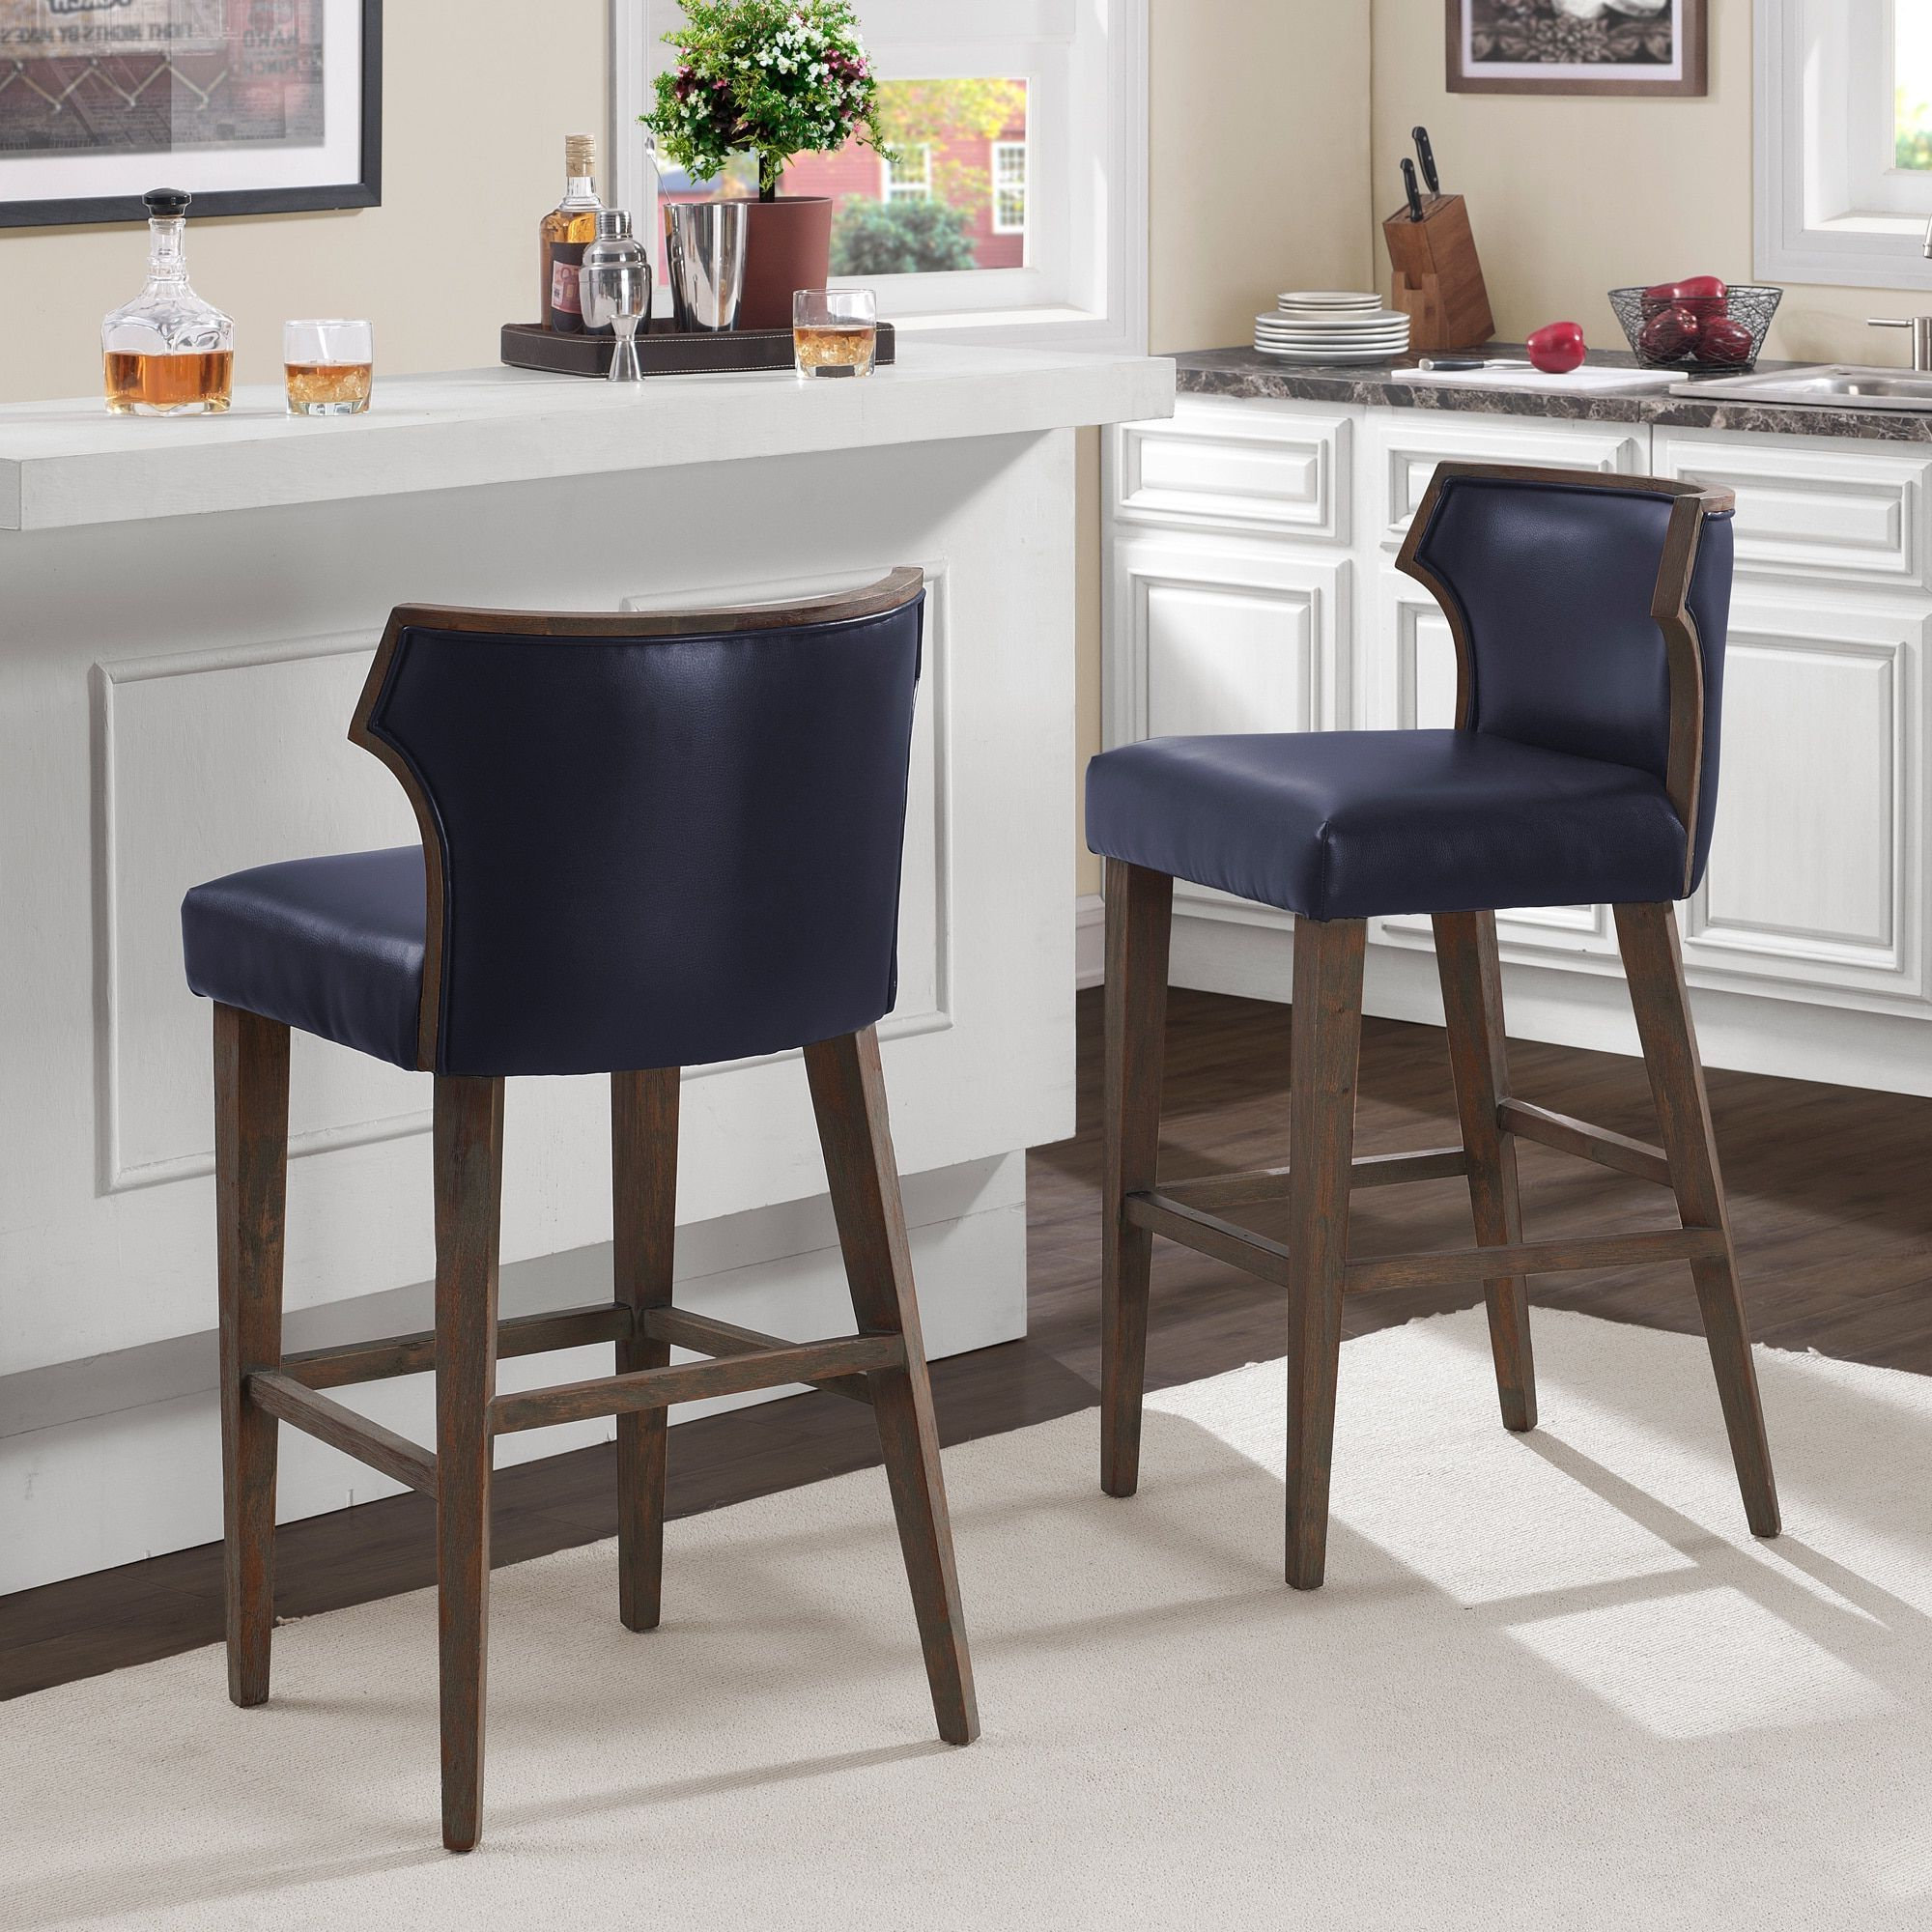 Marvin Navy Bonded Bar Stool, Blue (bonded Leather) | Products | Bar Throughout Marvin Rustic Natural 60 Inch Tv Stands (View 13 of 20)